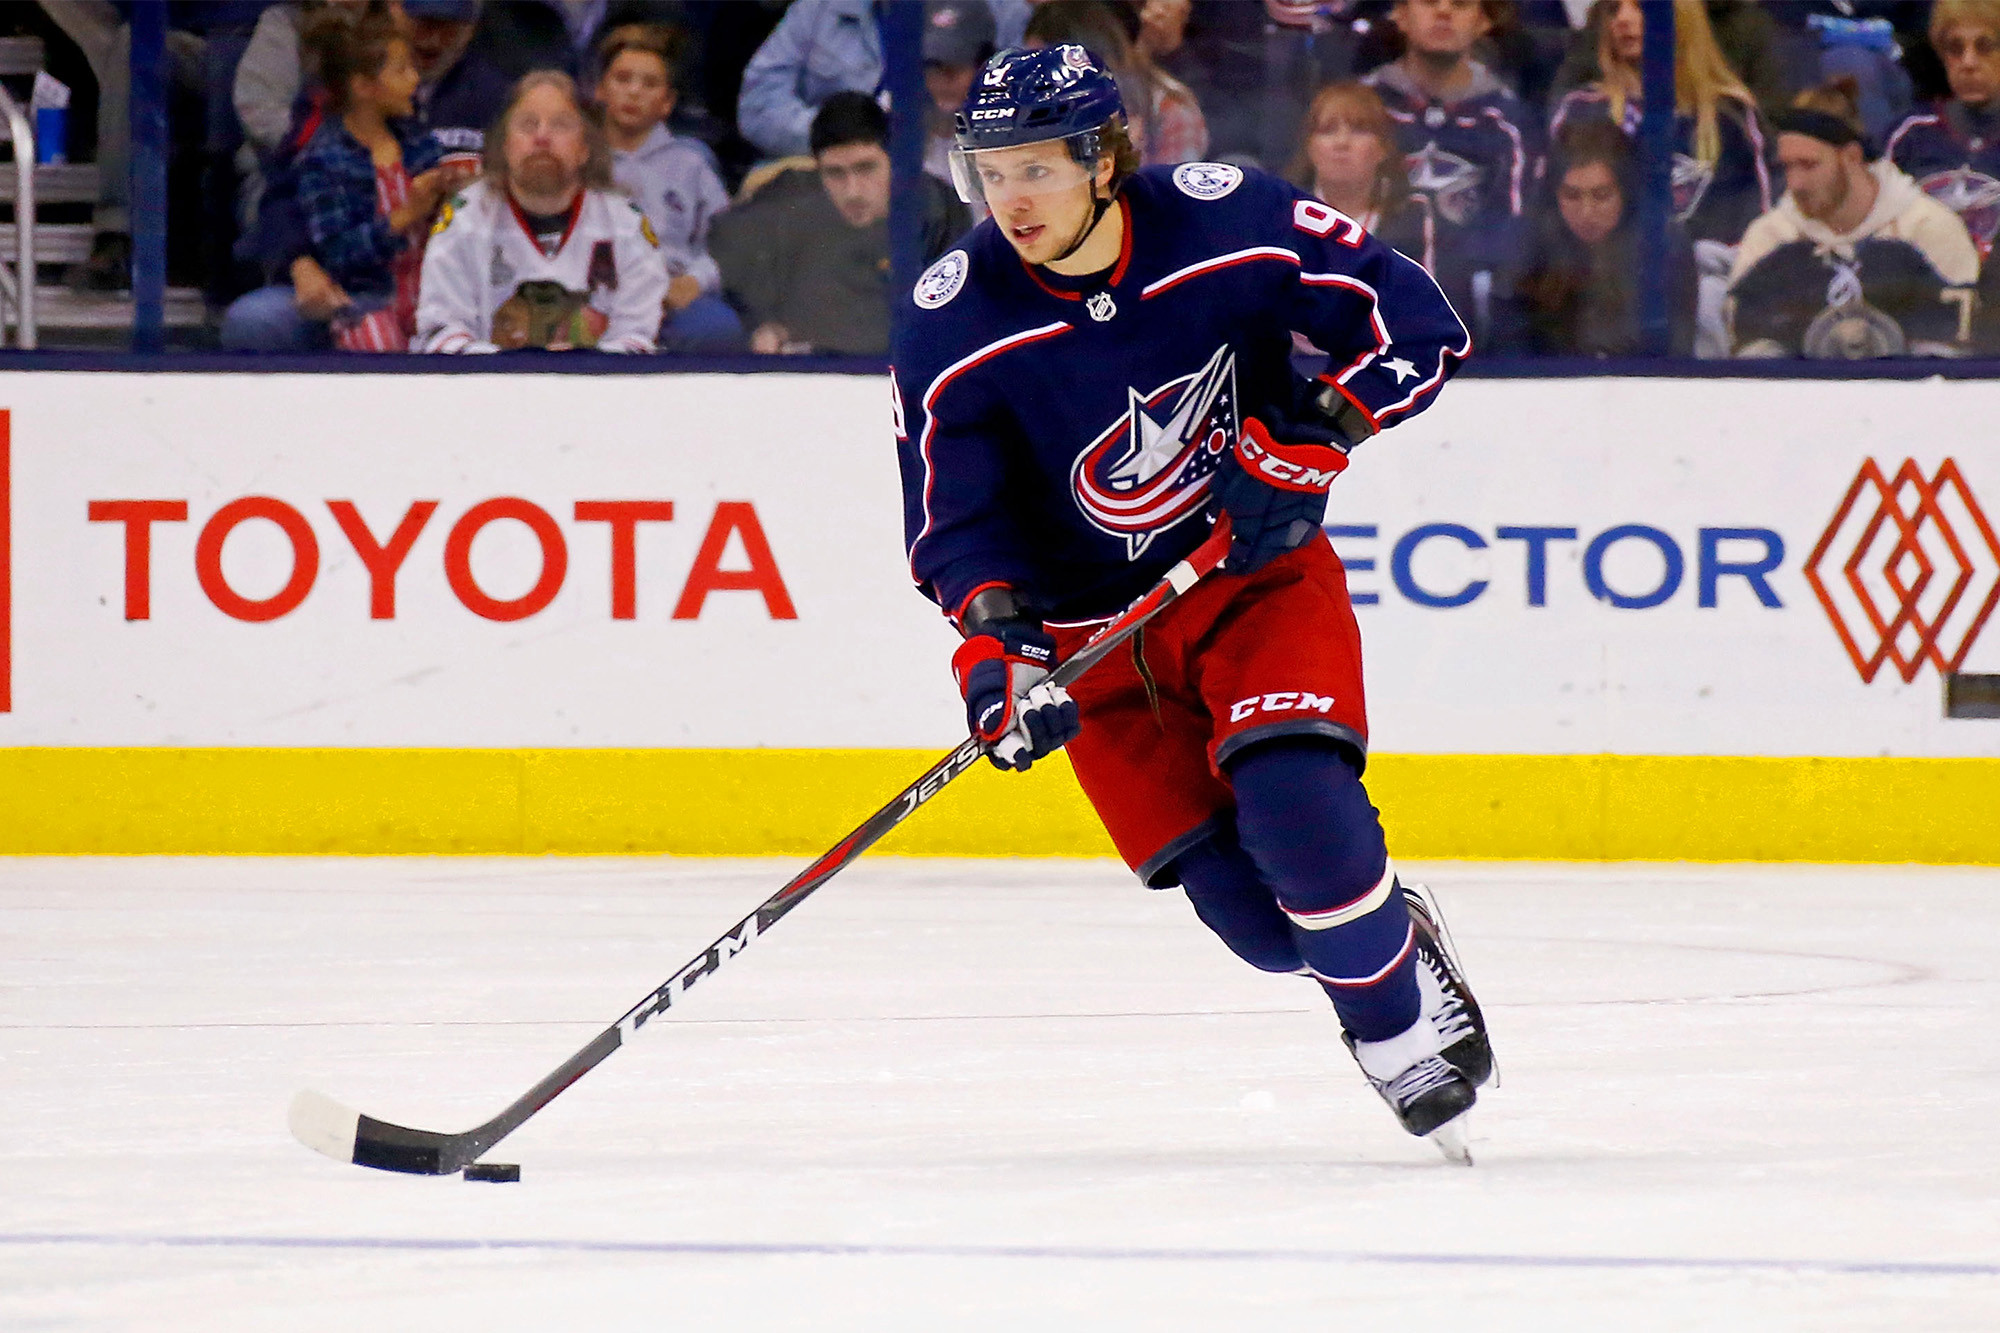 New York Rangers signs Artemi Panarin for a huge sum